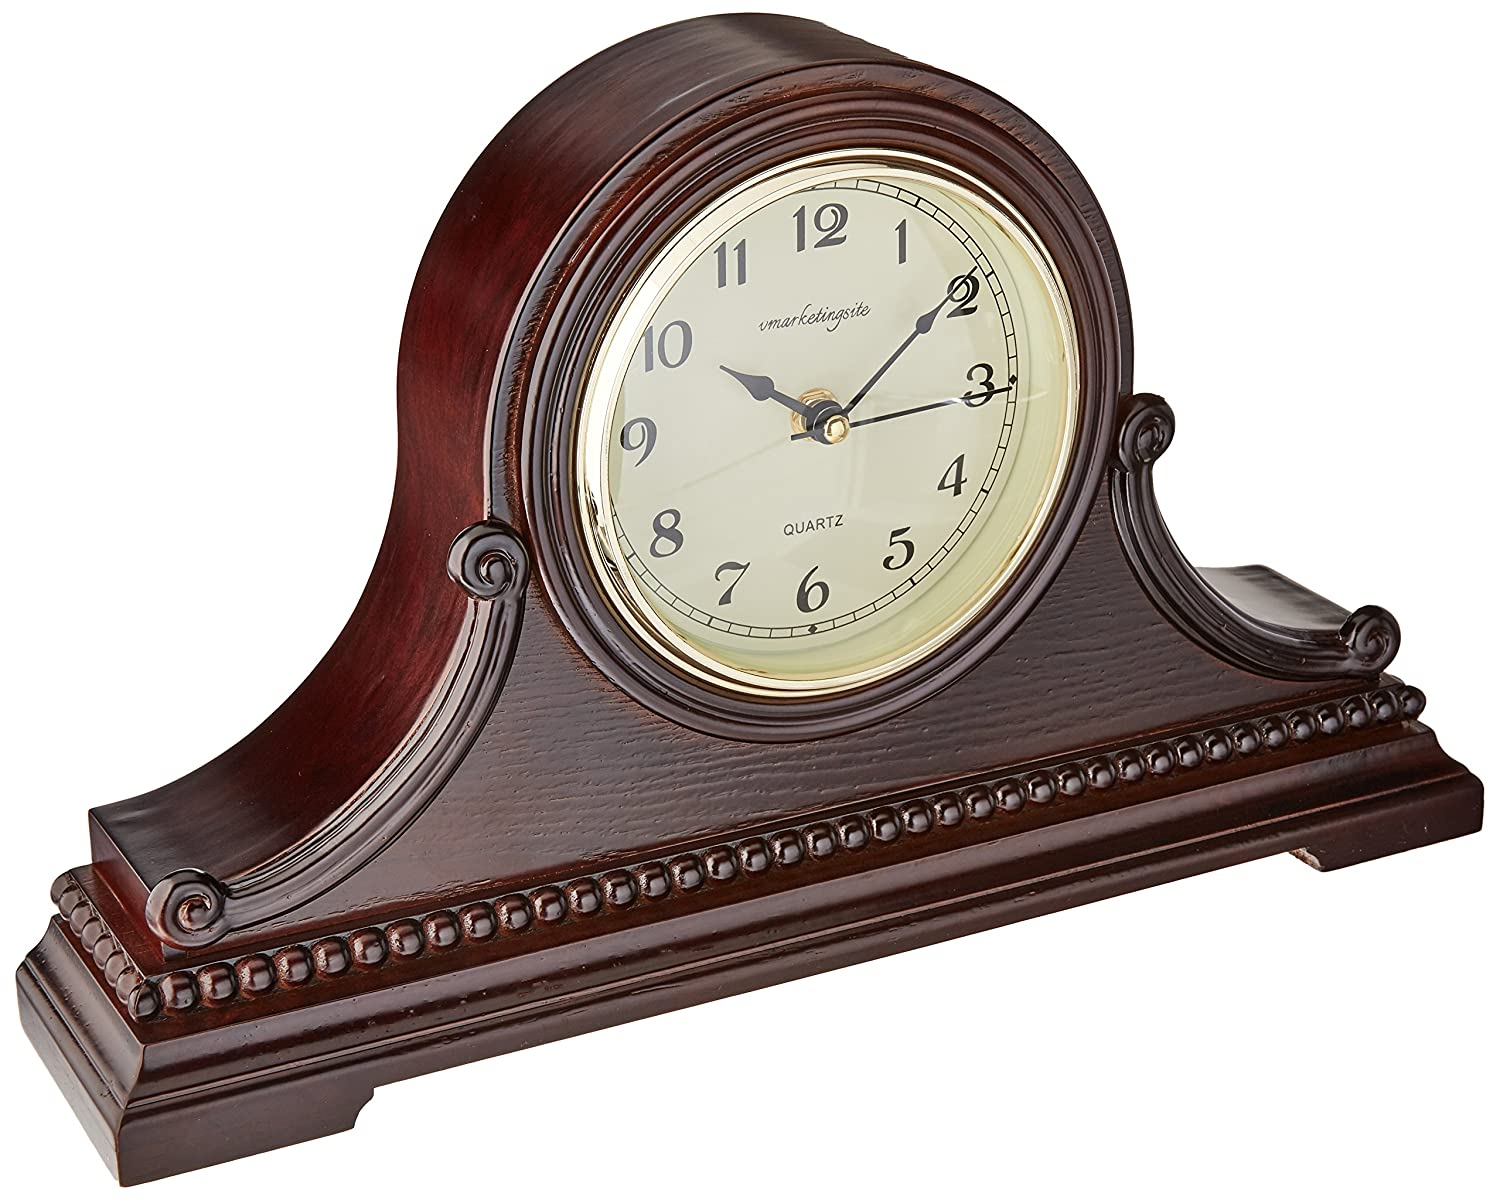 Vmarketingsite Decorative Mantel Clock with Westminster Chime, 9